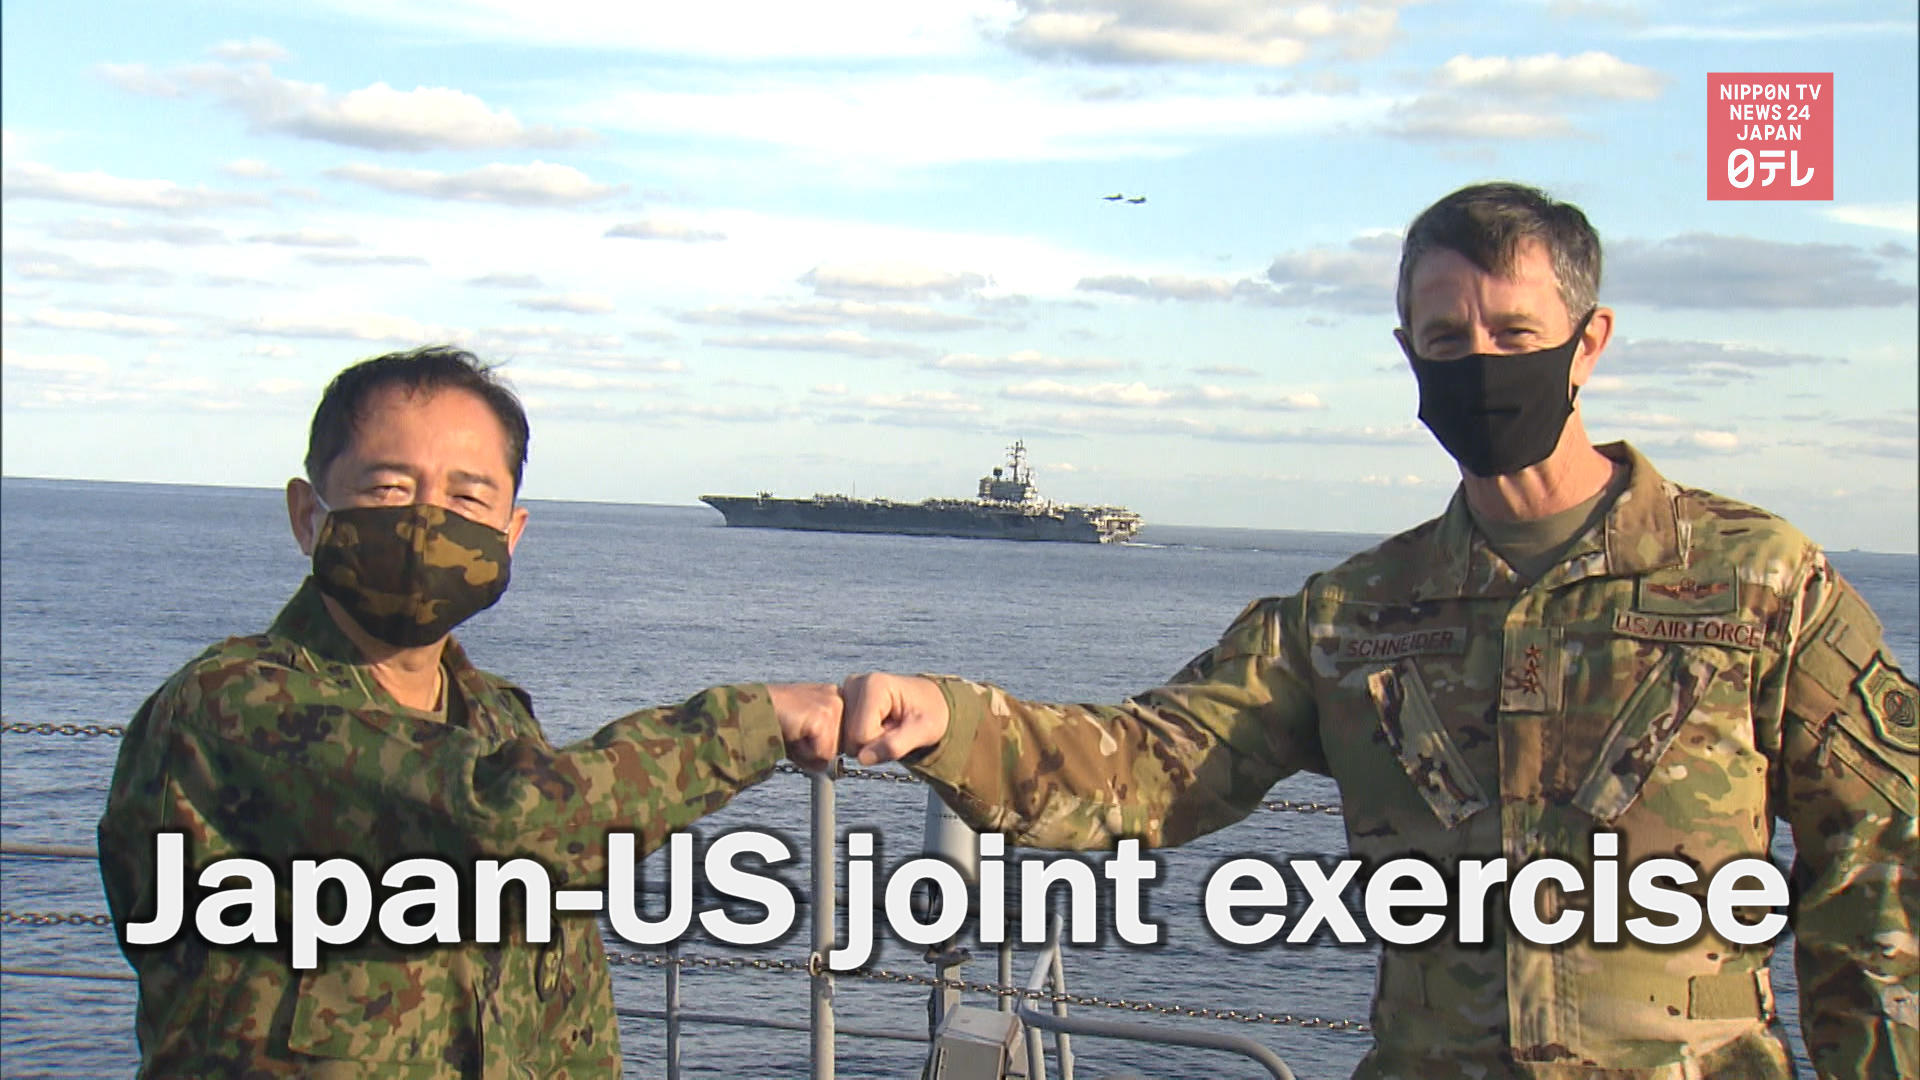 Japan-US joint exercise